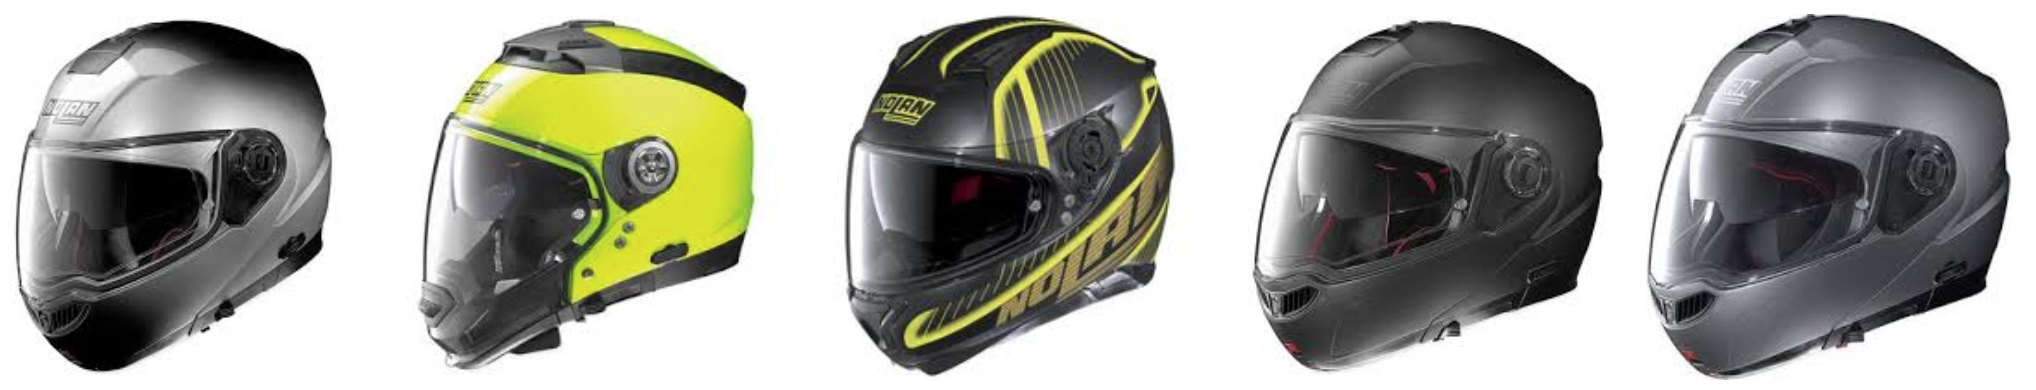 Motorcycle Helmet Reviews - Hands On Reviews for Over 20 Years